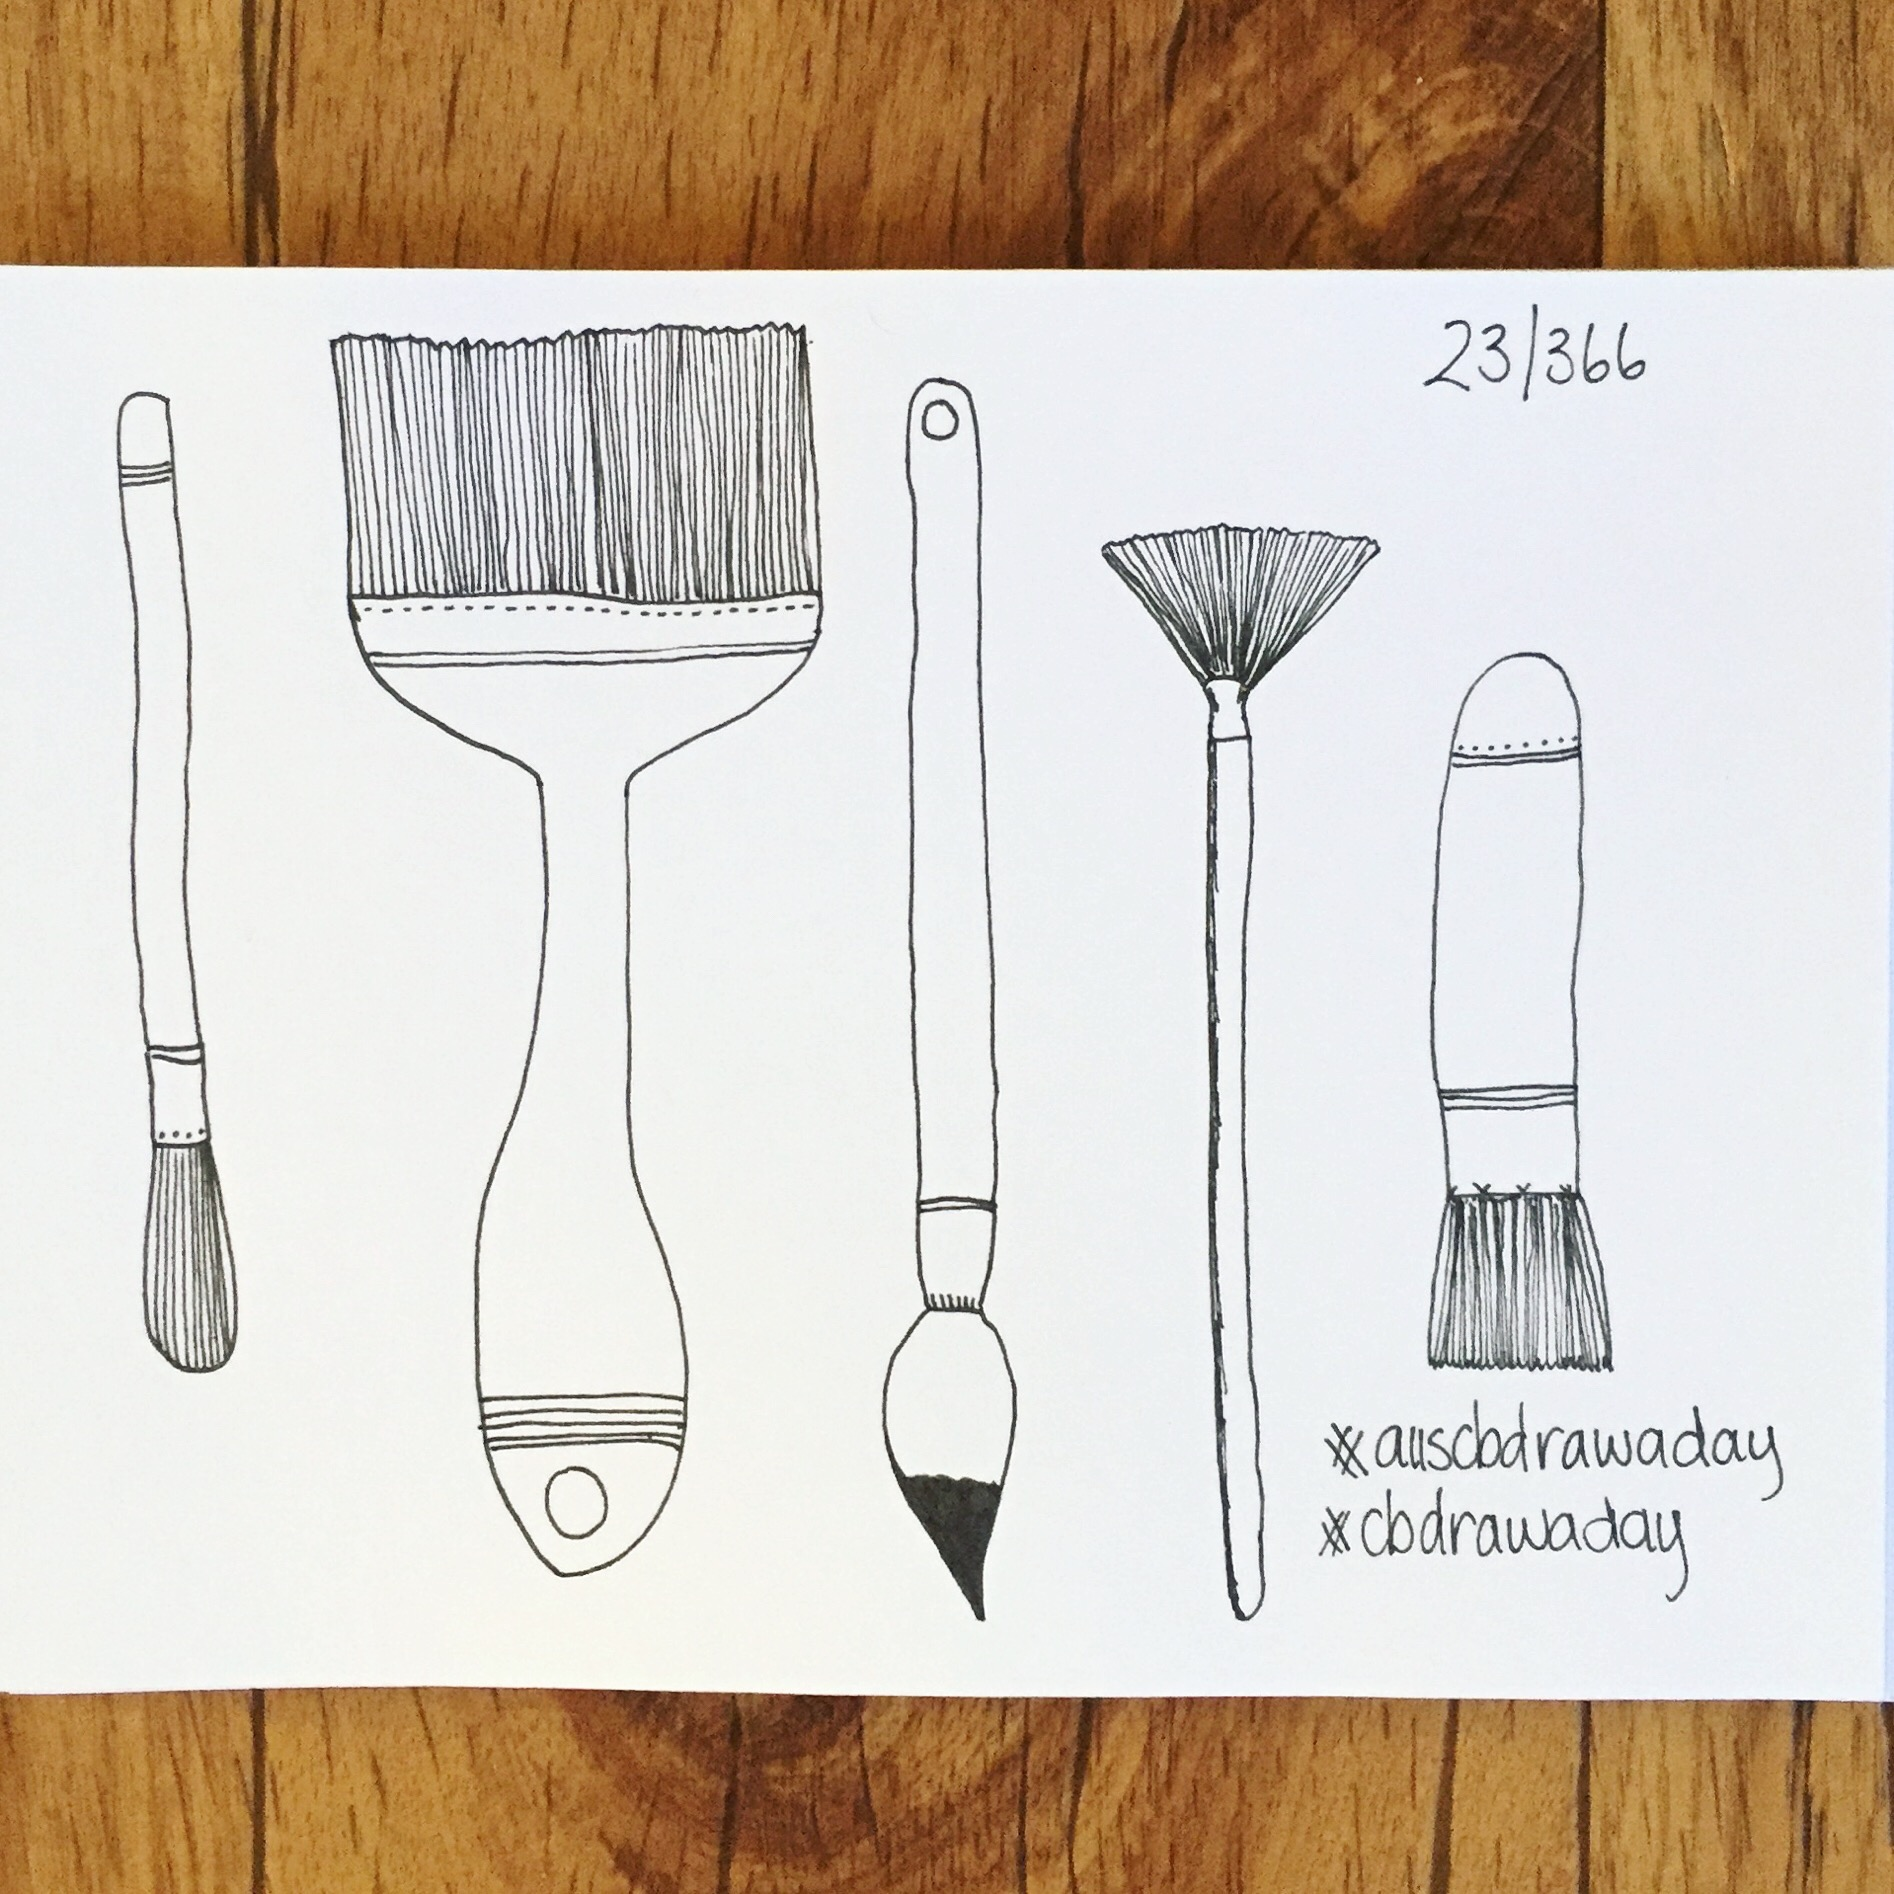 Day 23 Paintbrushes